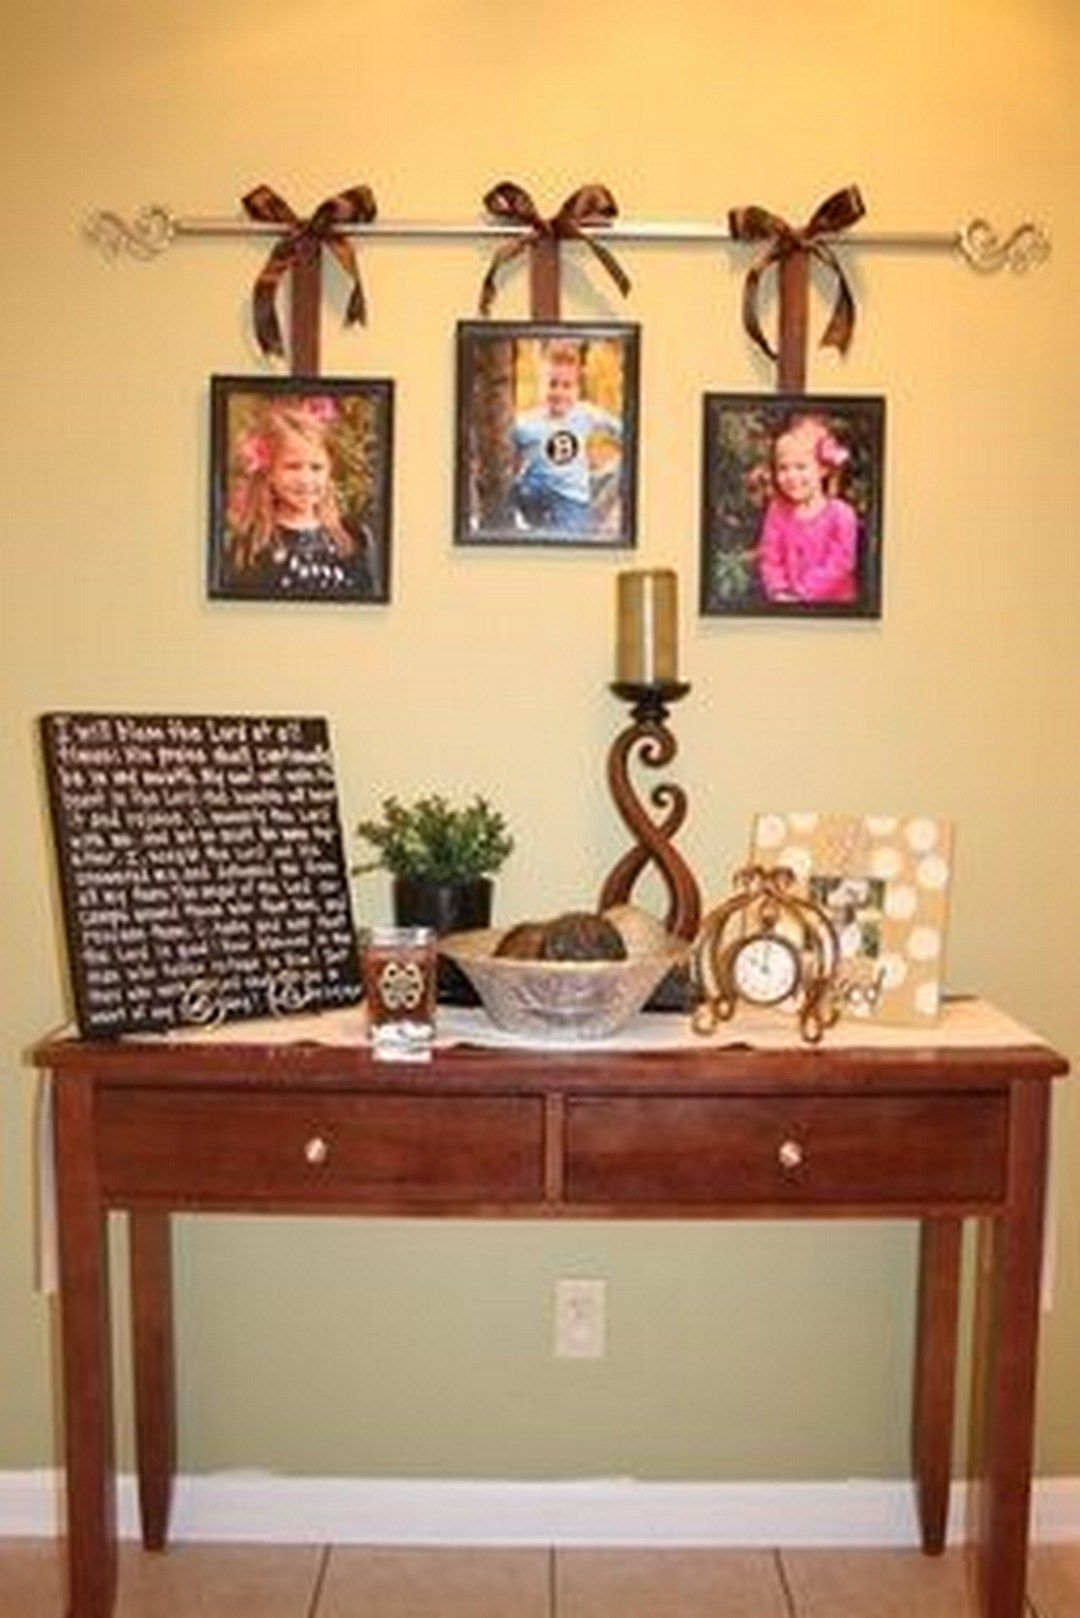 99 DIY Home Decor Ideas On A Budget You Must Try (59) | DIY Home ...